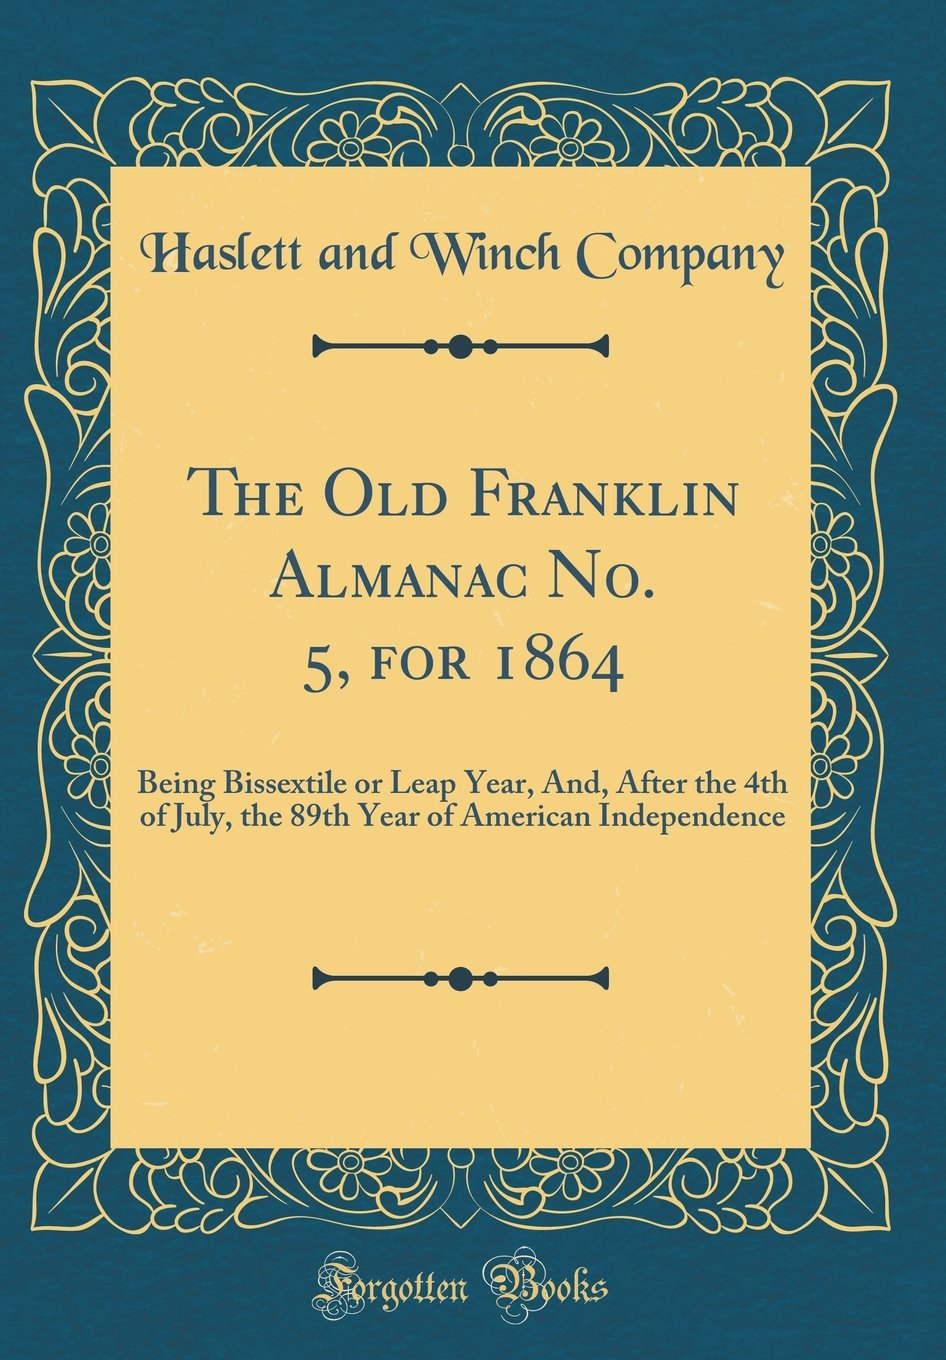 The Old Franklin Almanac No  5, for 1864: Being Bissextile